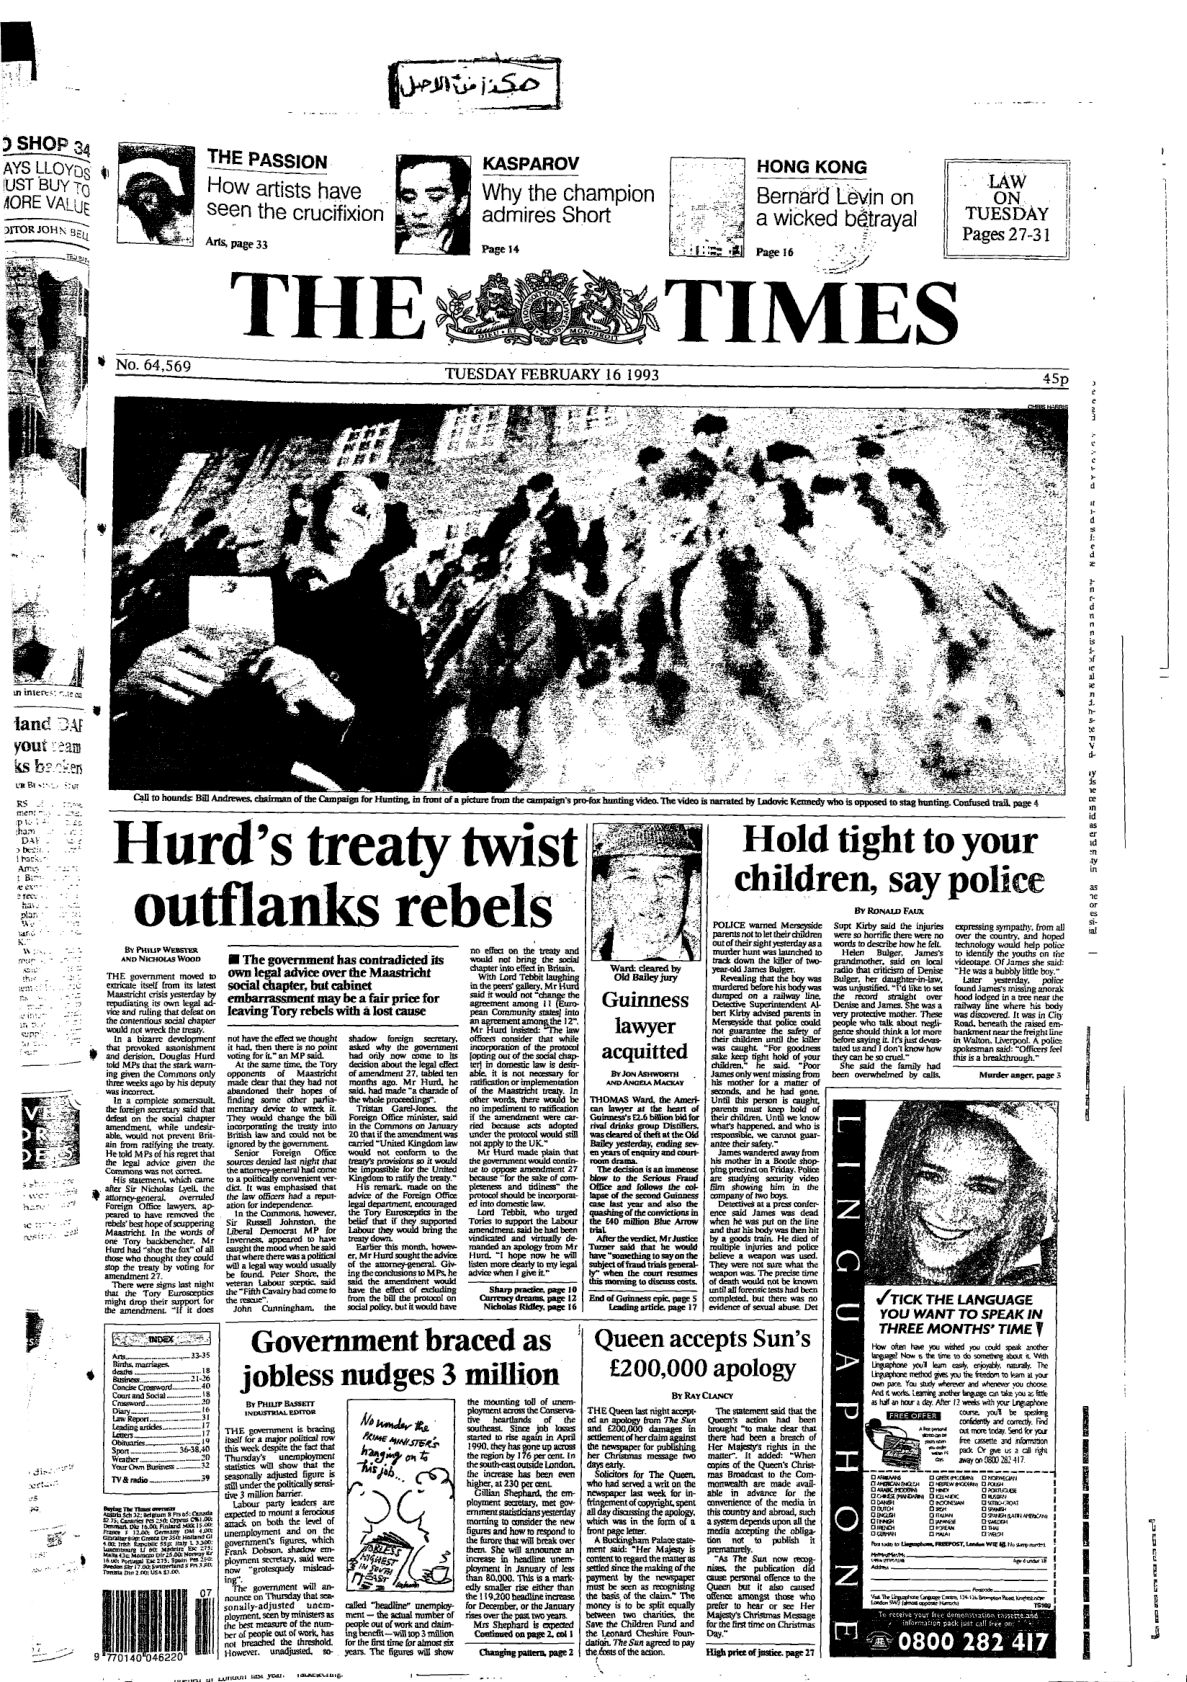 The Times Issue No. 64569. 1993-02-16, UK